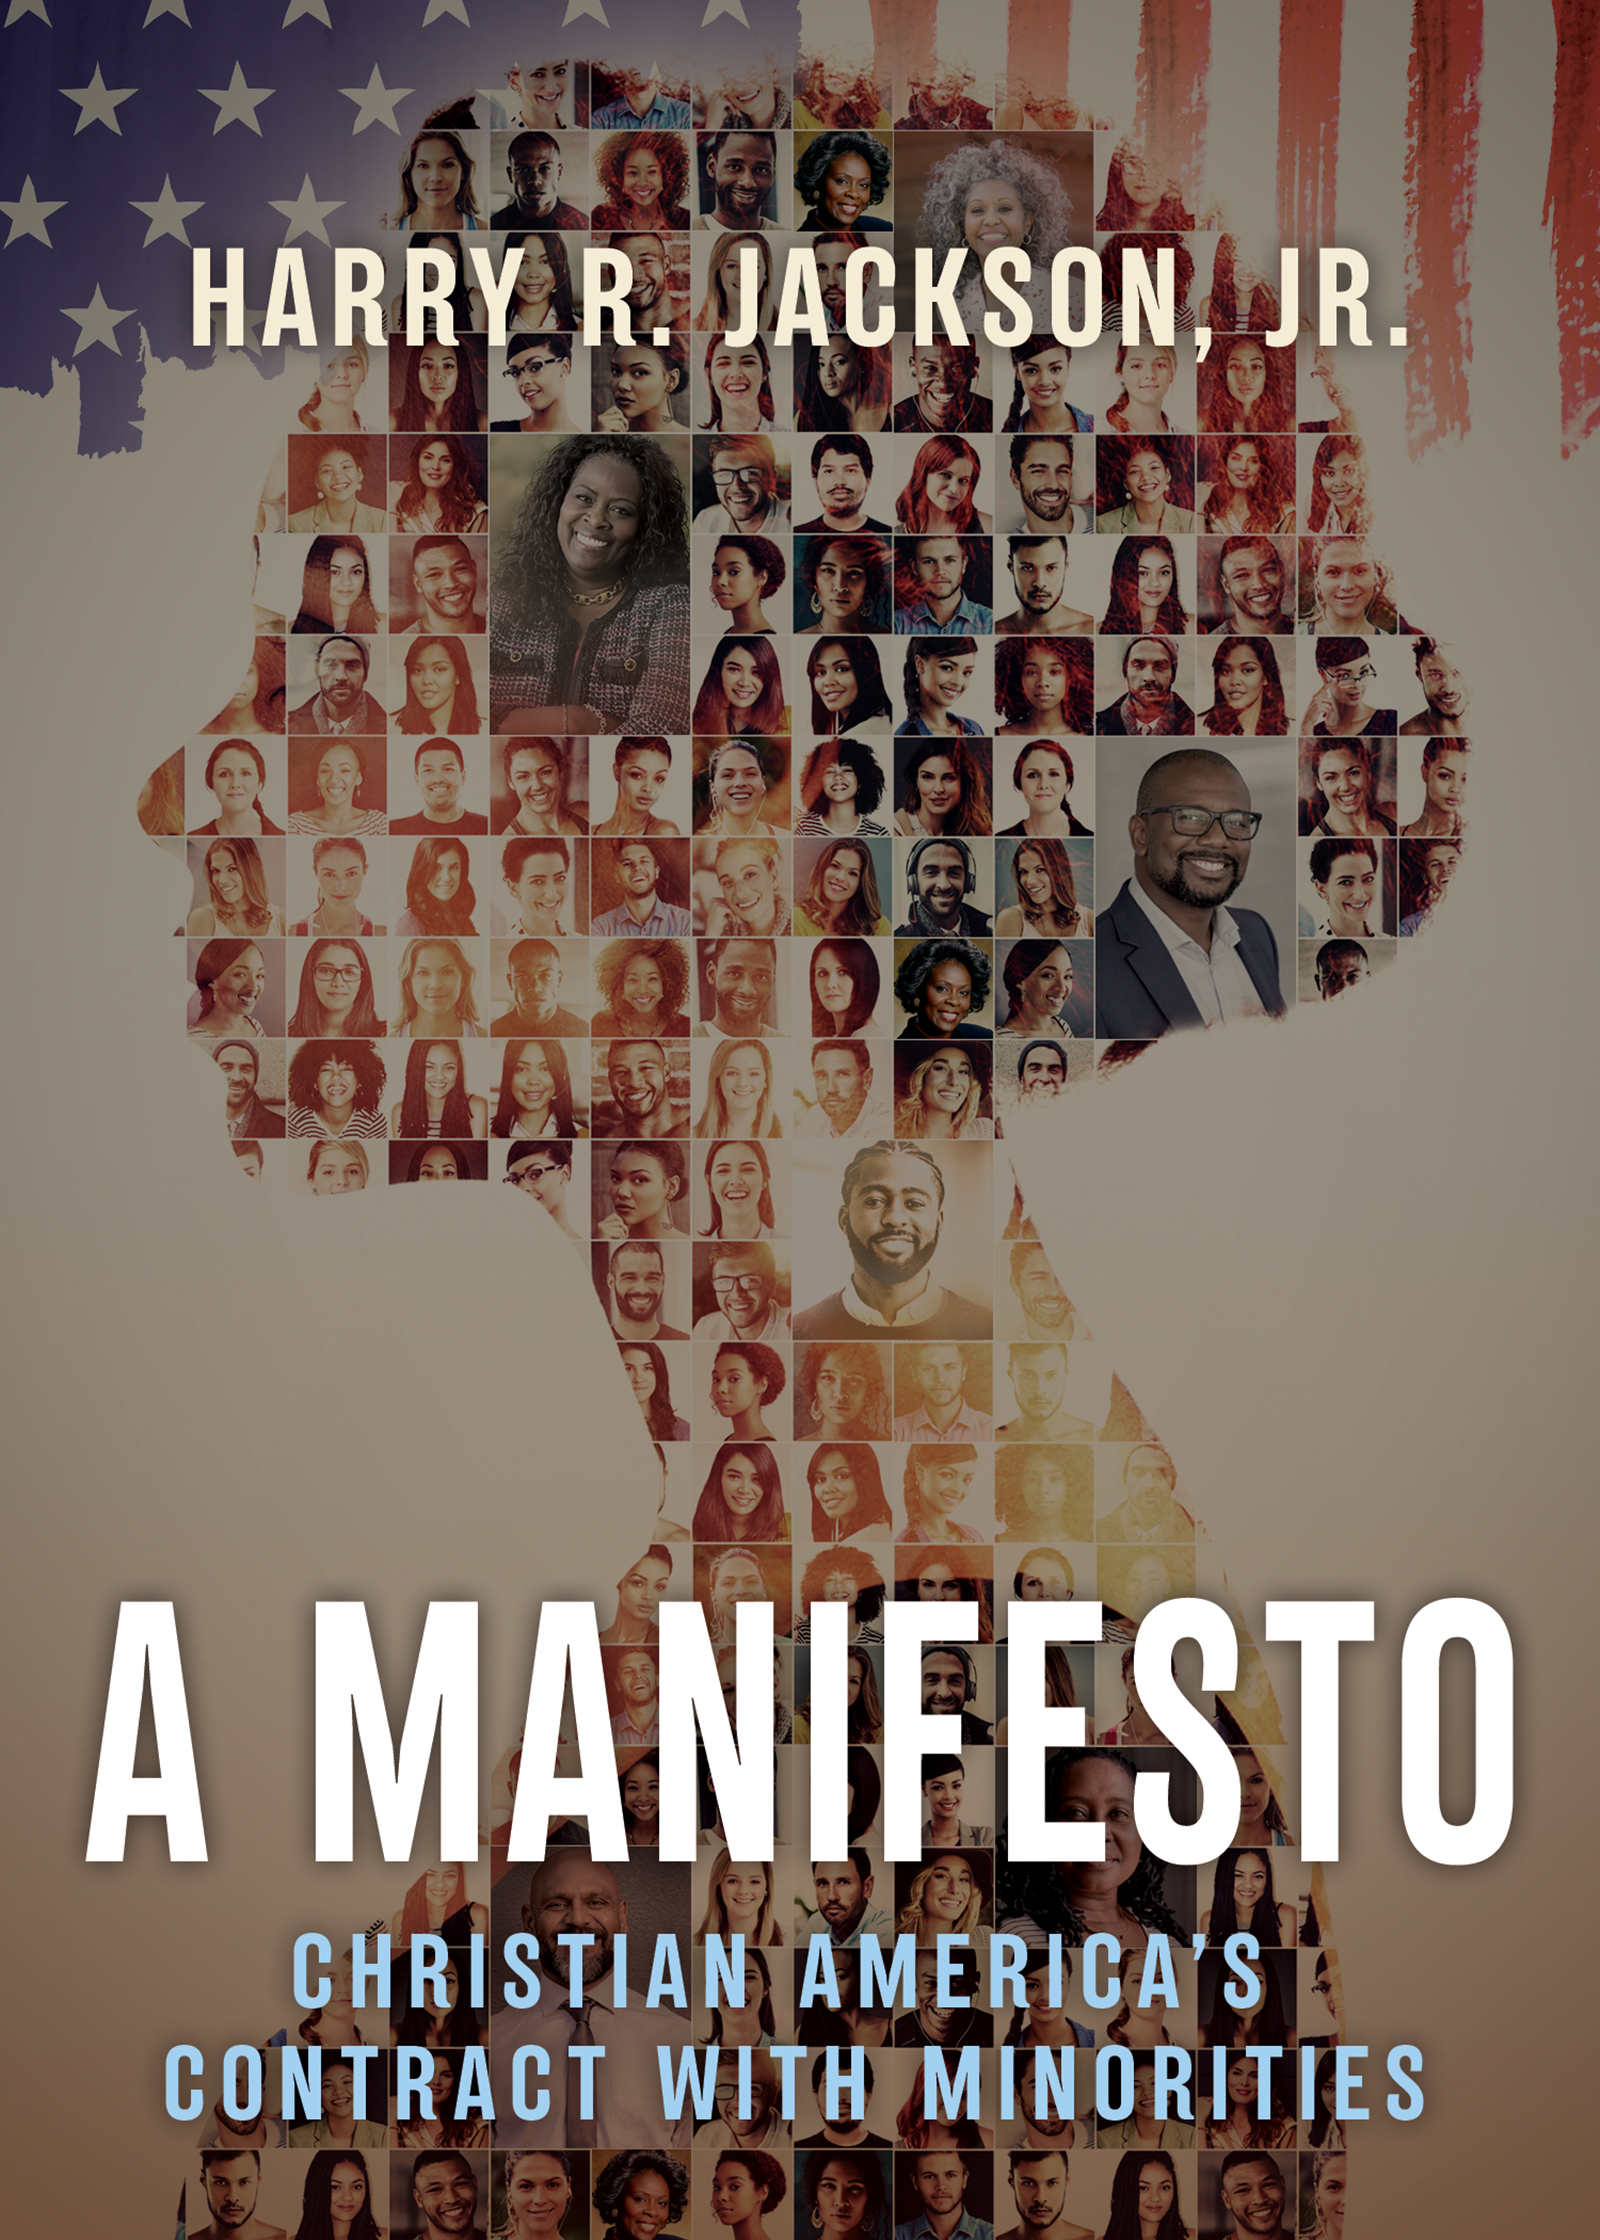 A Manifesto: Christian America's Contract with Minorities